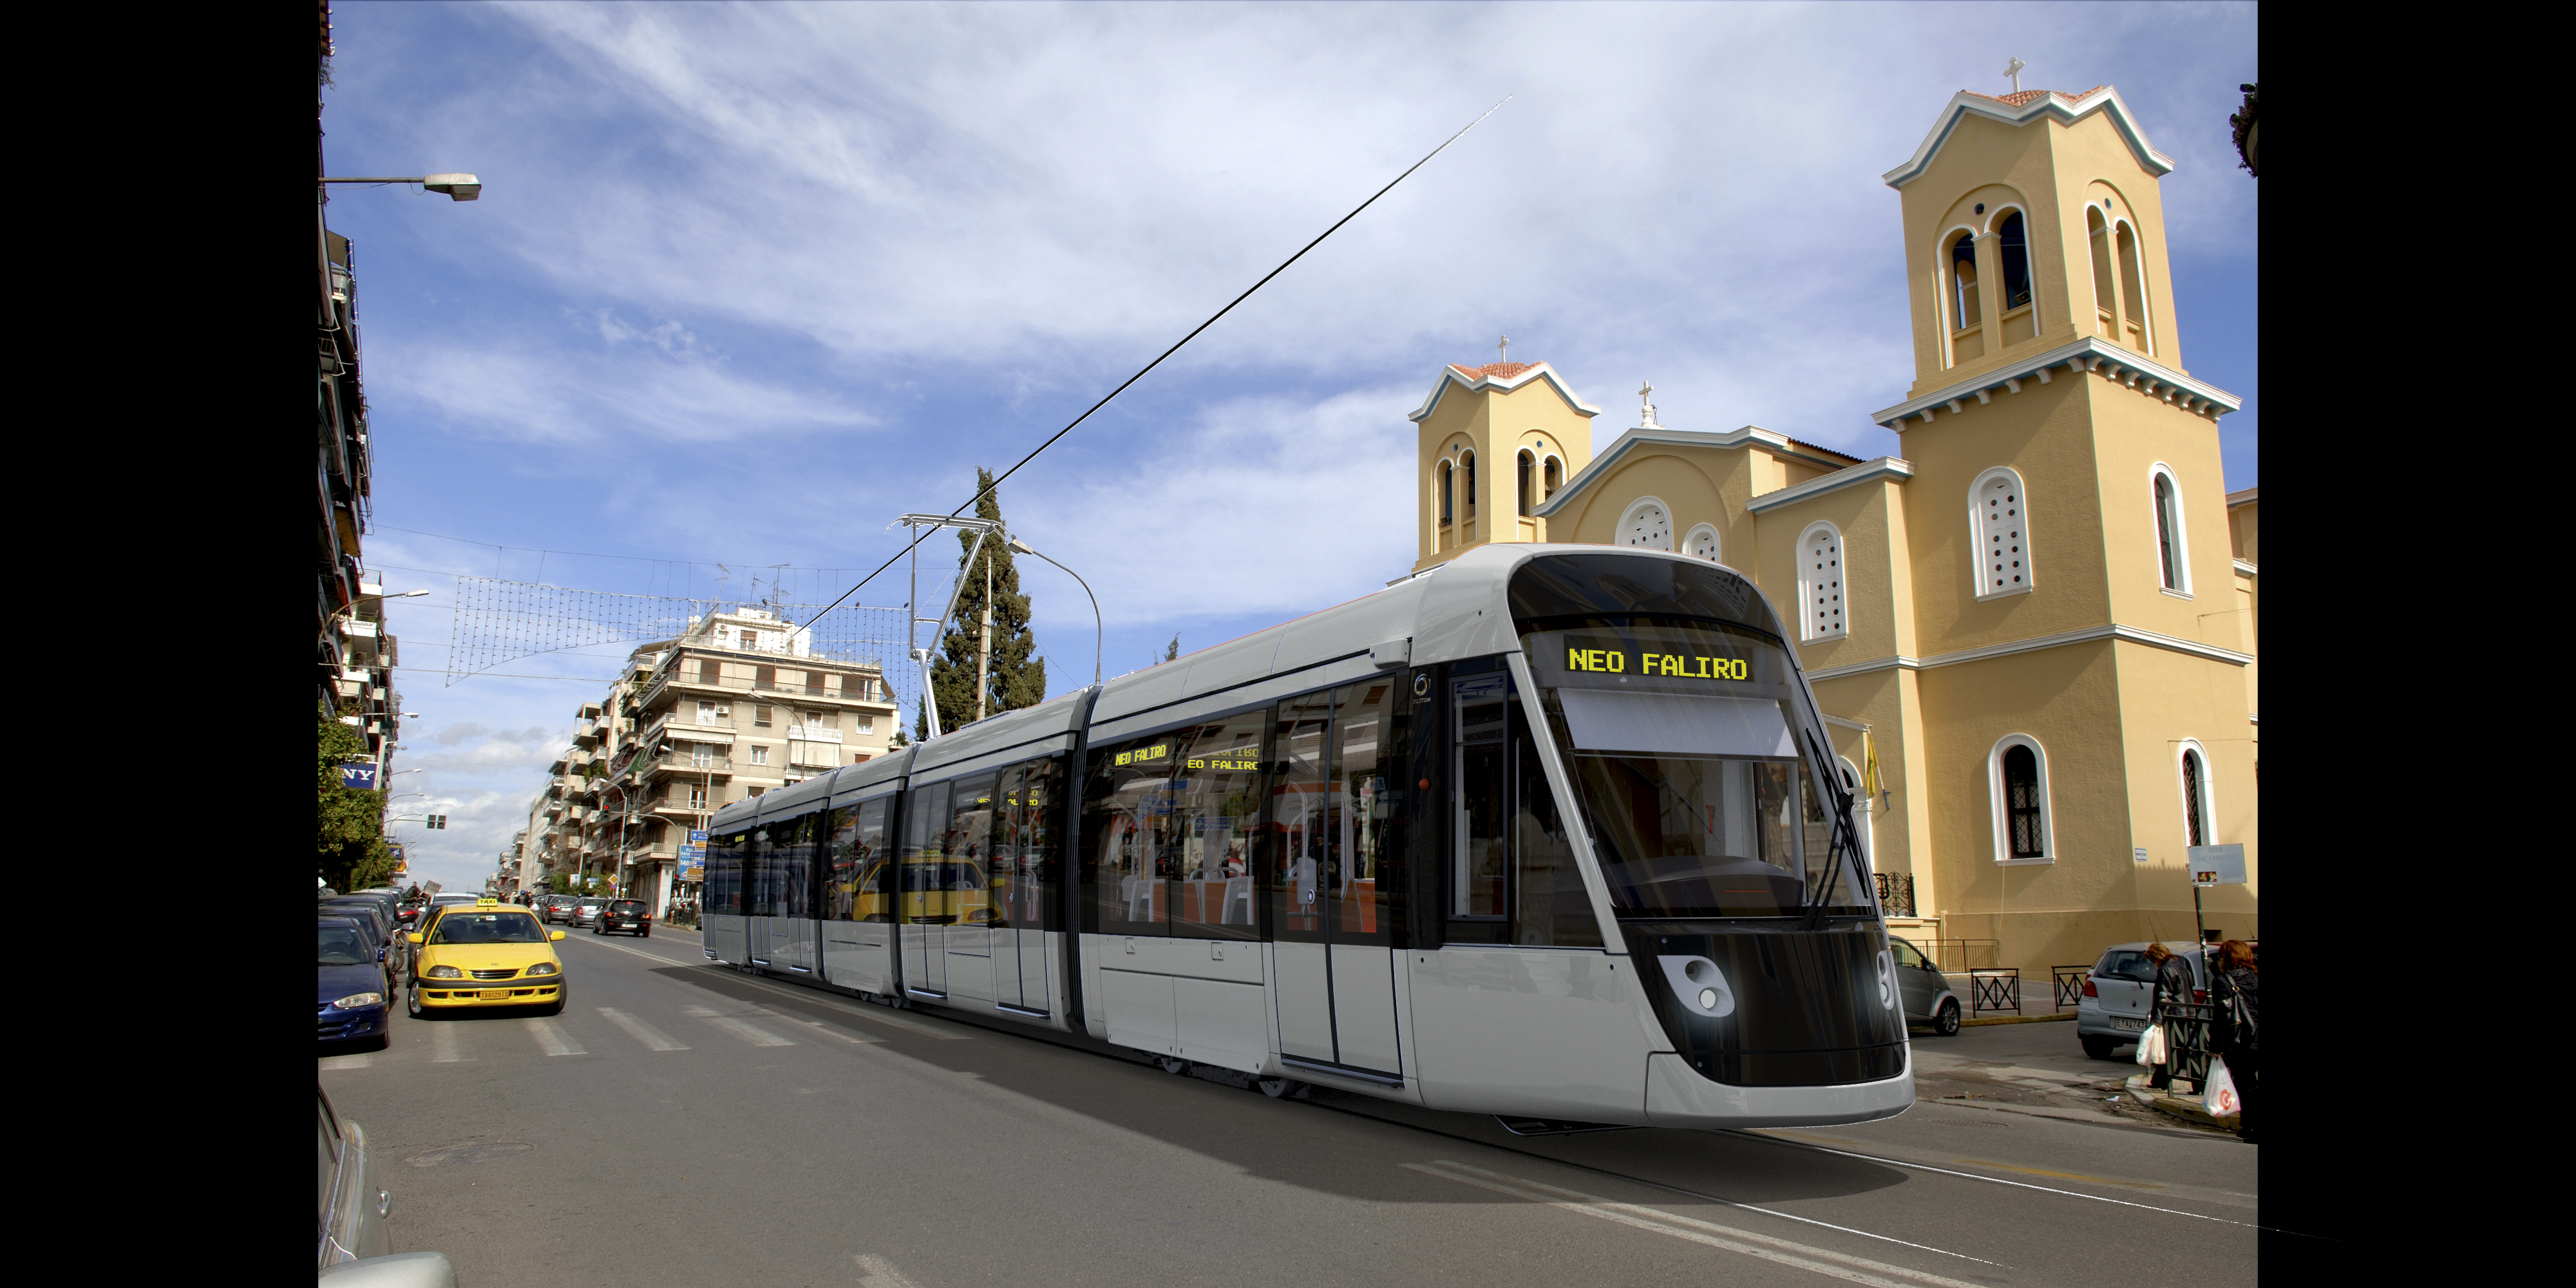 [Image: LRV_Athenes_integration_eglise_TH1.jpg]